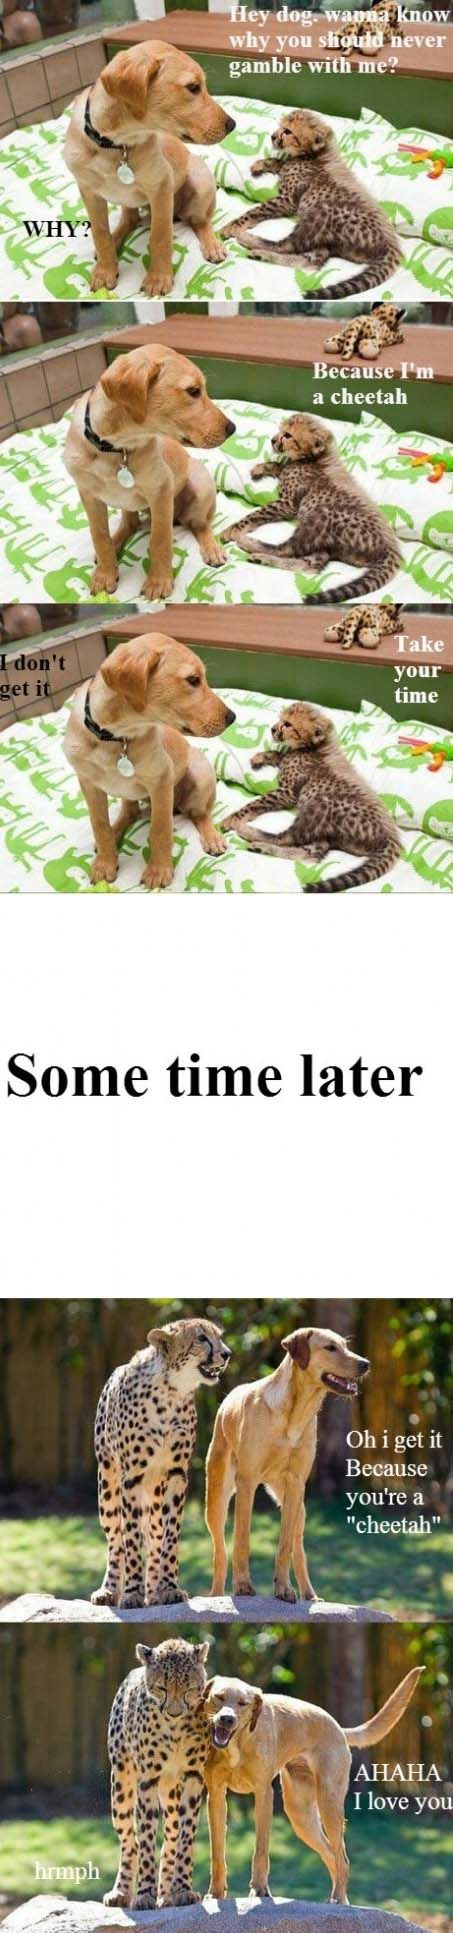 Cheetahs Are Quicker Than Dogs